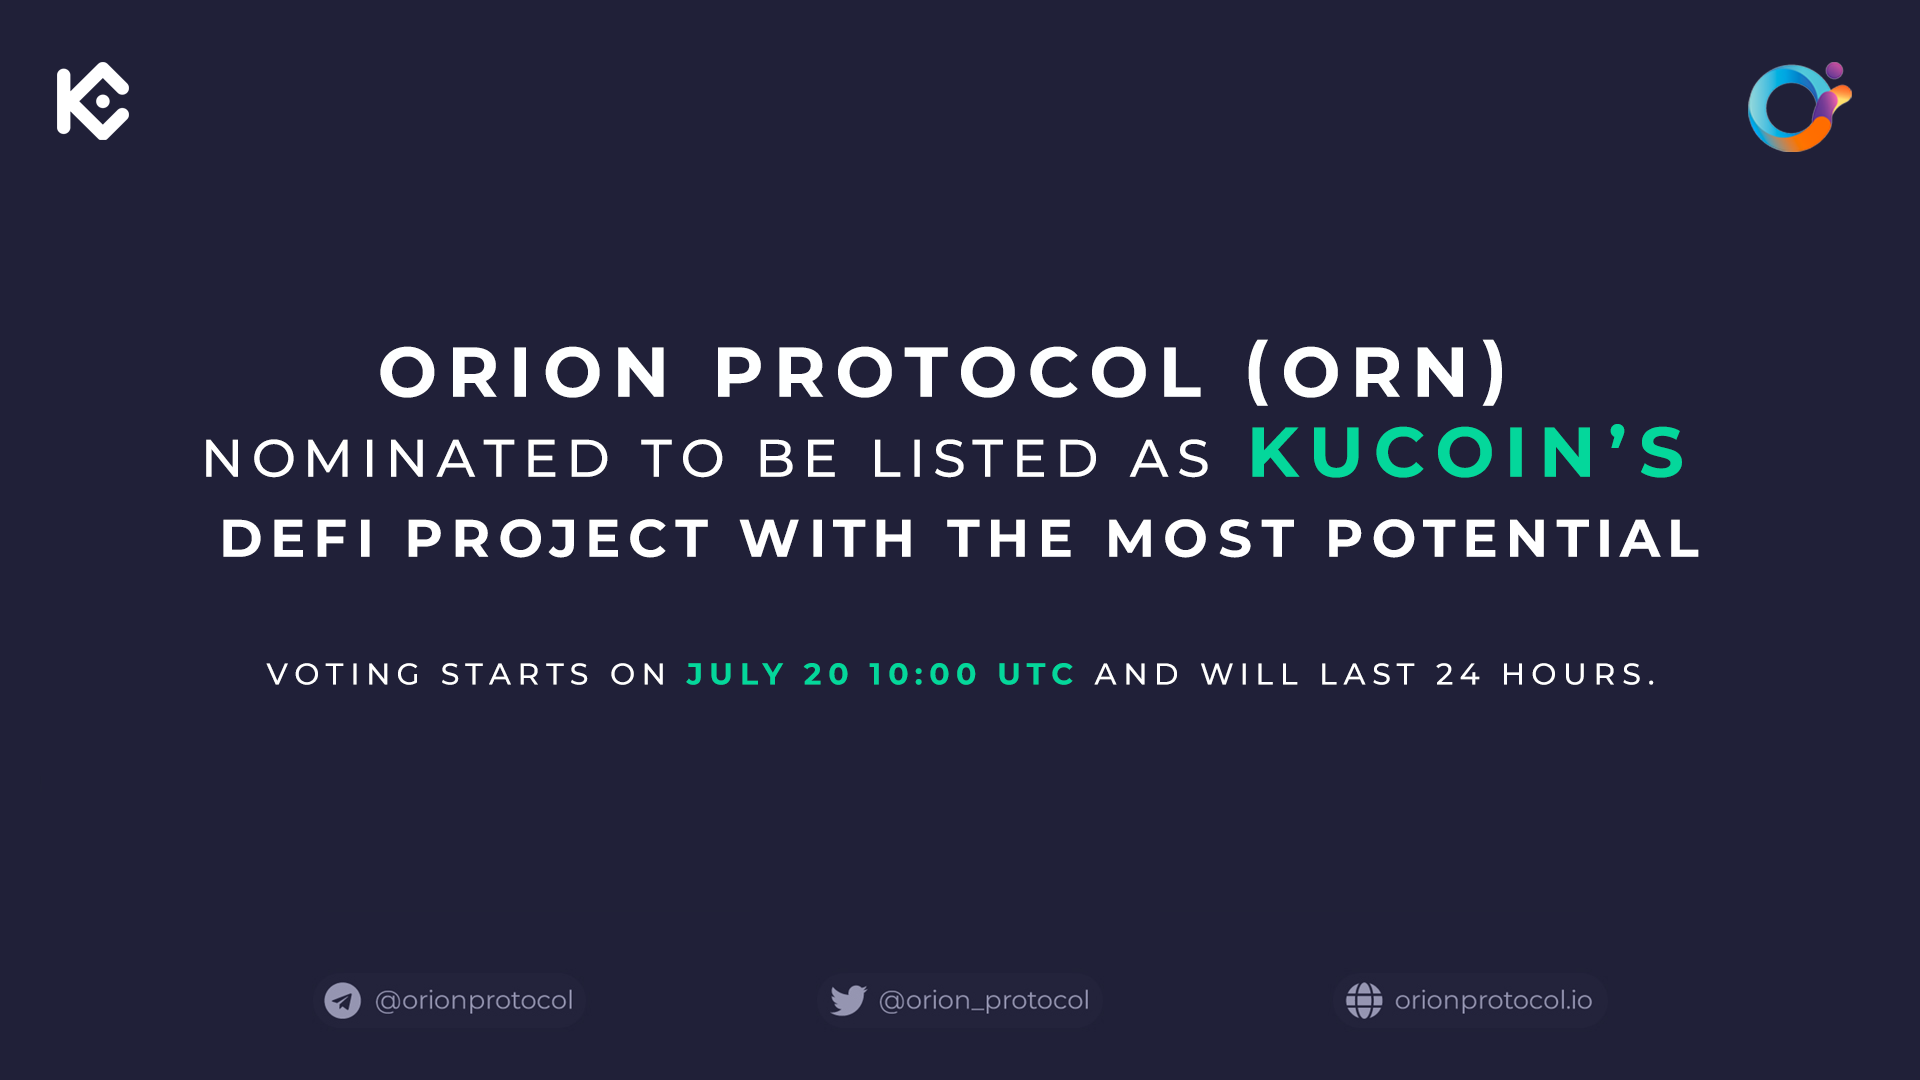 Orion: KuCoin's DeFi Project With the Most Potential?